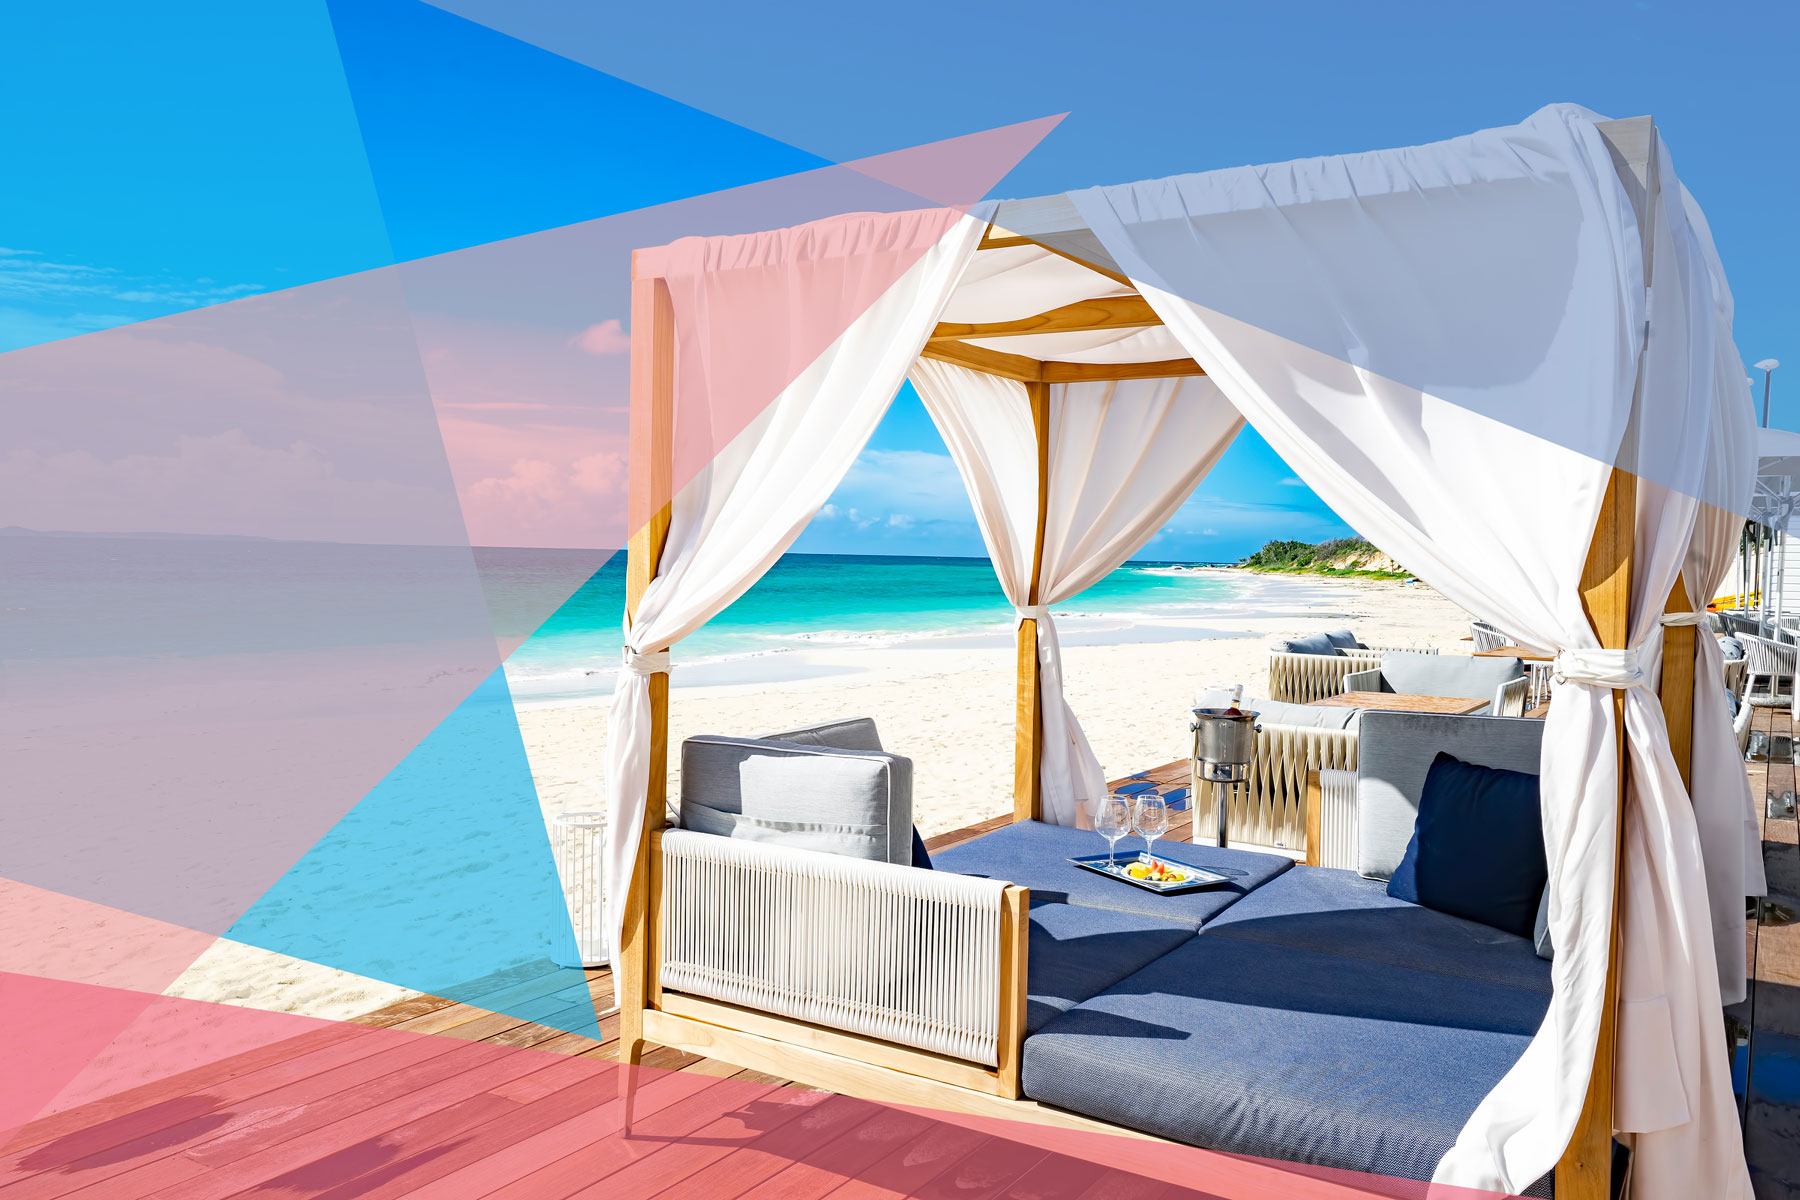 Luxury resort look - daybed/chaise at CuisinArt Resort